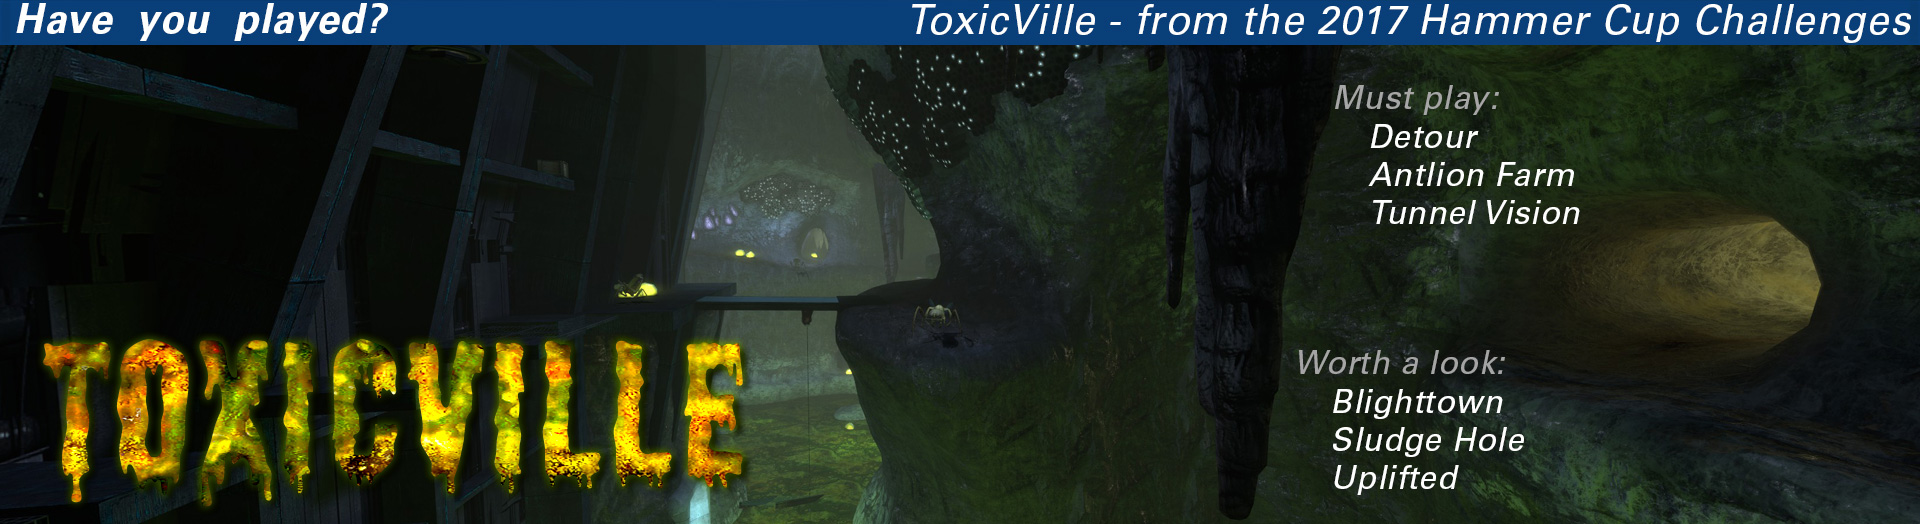 Have you played ToxicVille?